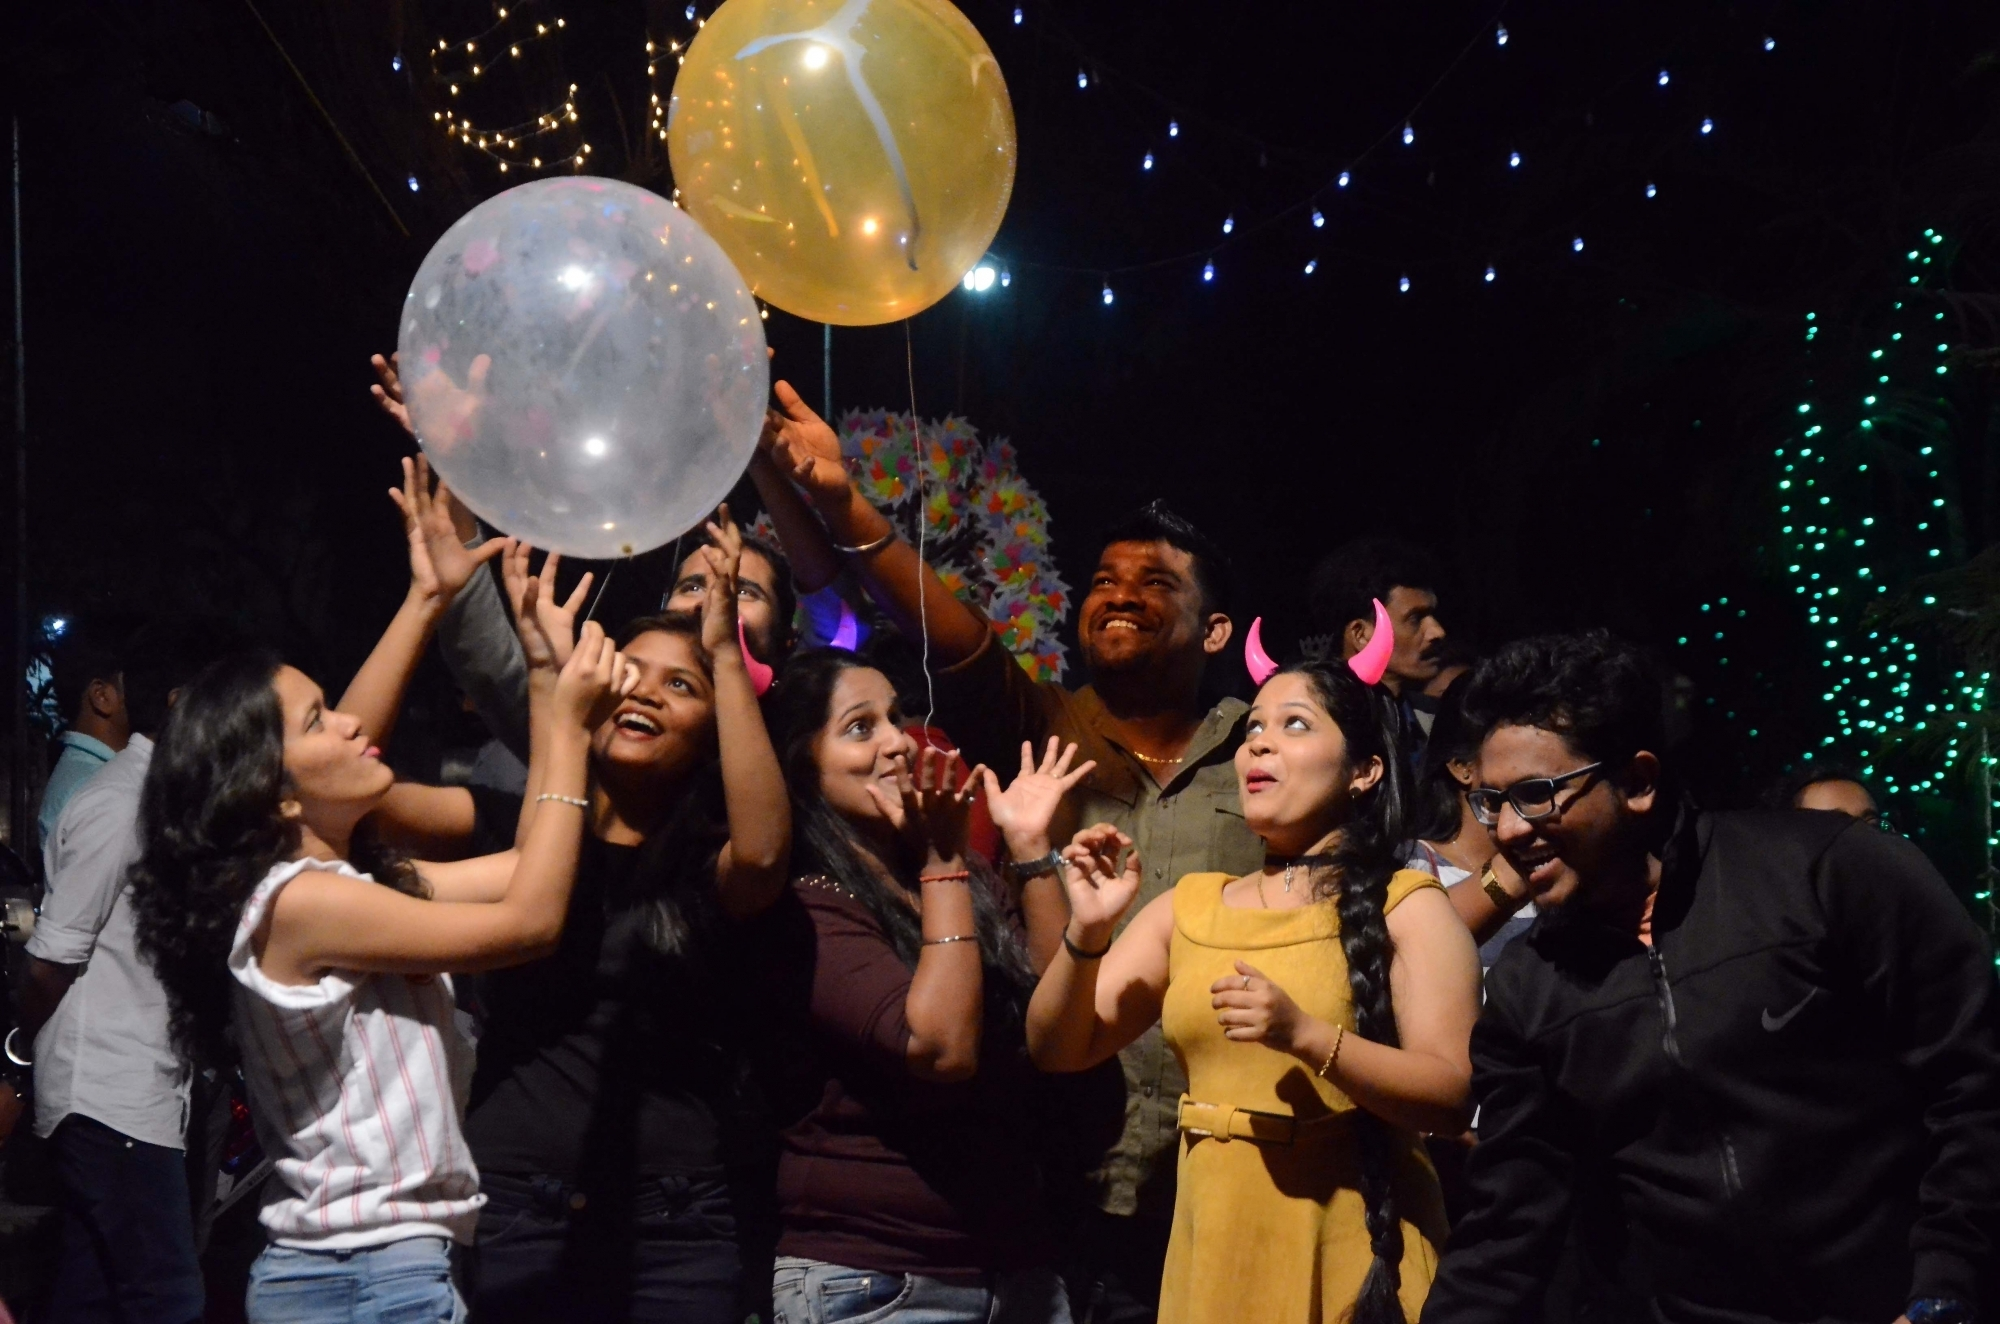 Youngsters celebrate on New Year's Eve on Sunday night in Mumbai. (Image Credit: IANS)